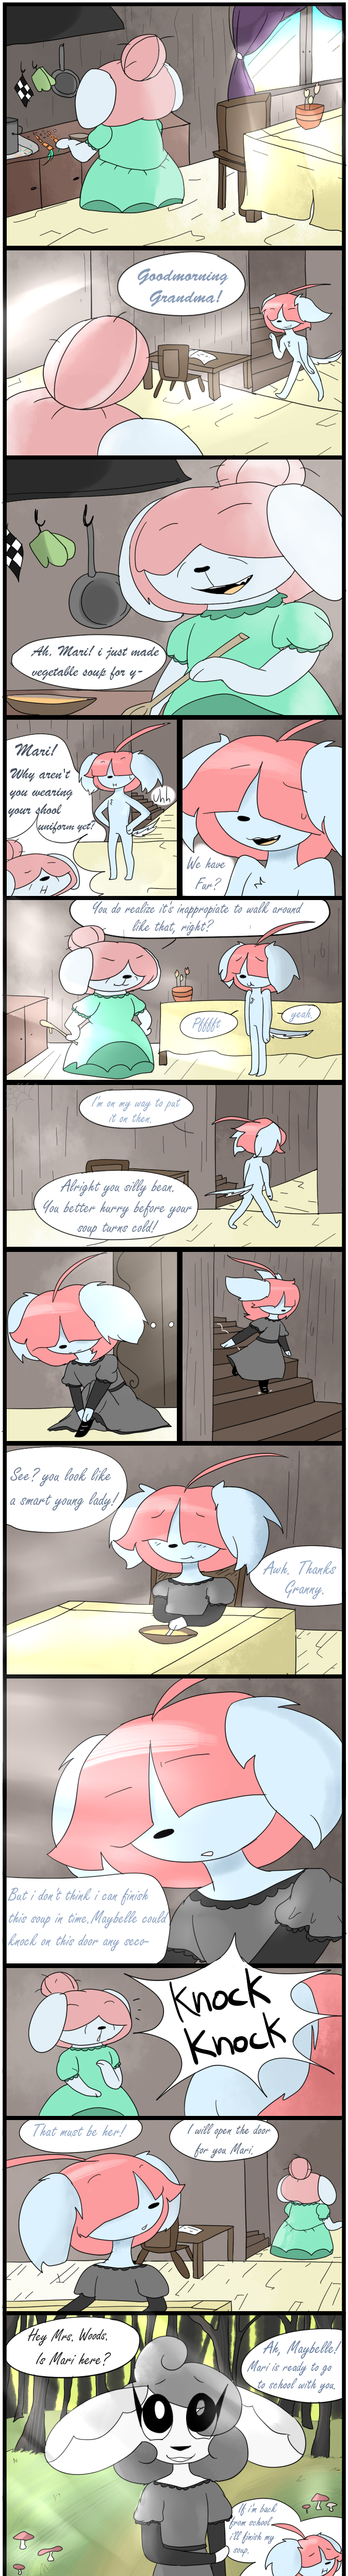 {Chapter 1} - #1